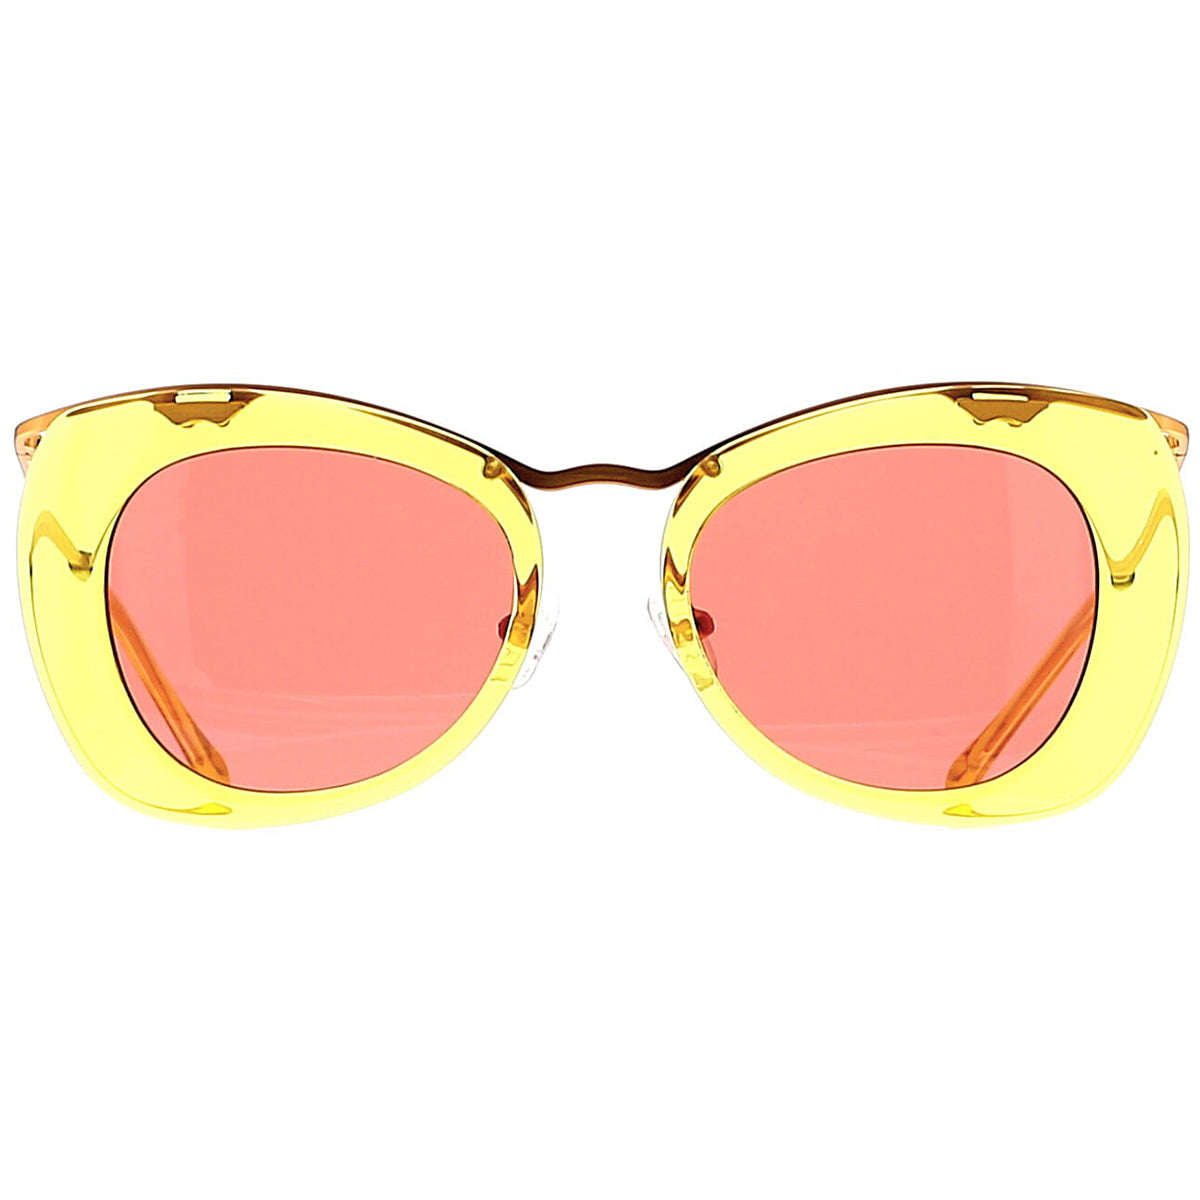 Dries Van Noten DVN193 C3 Sun Mustard/ Antique Yellow Gold/ Wine